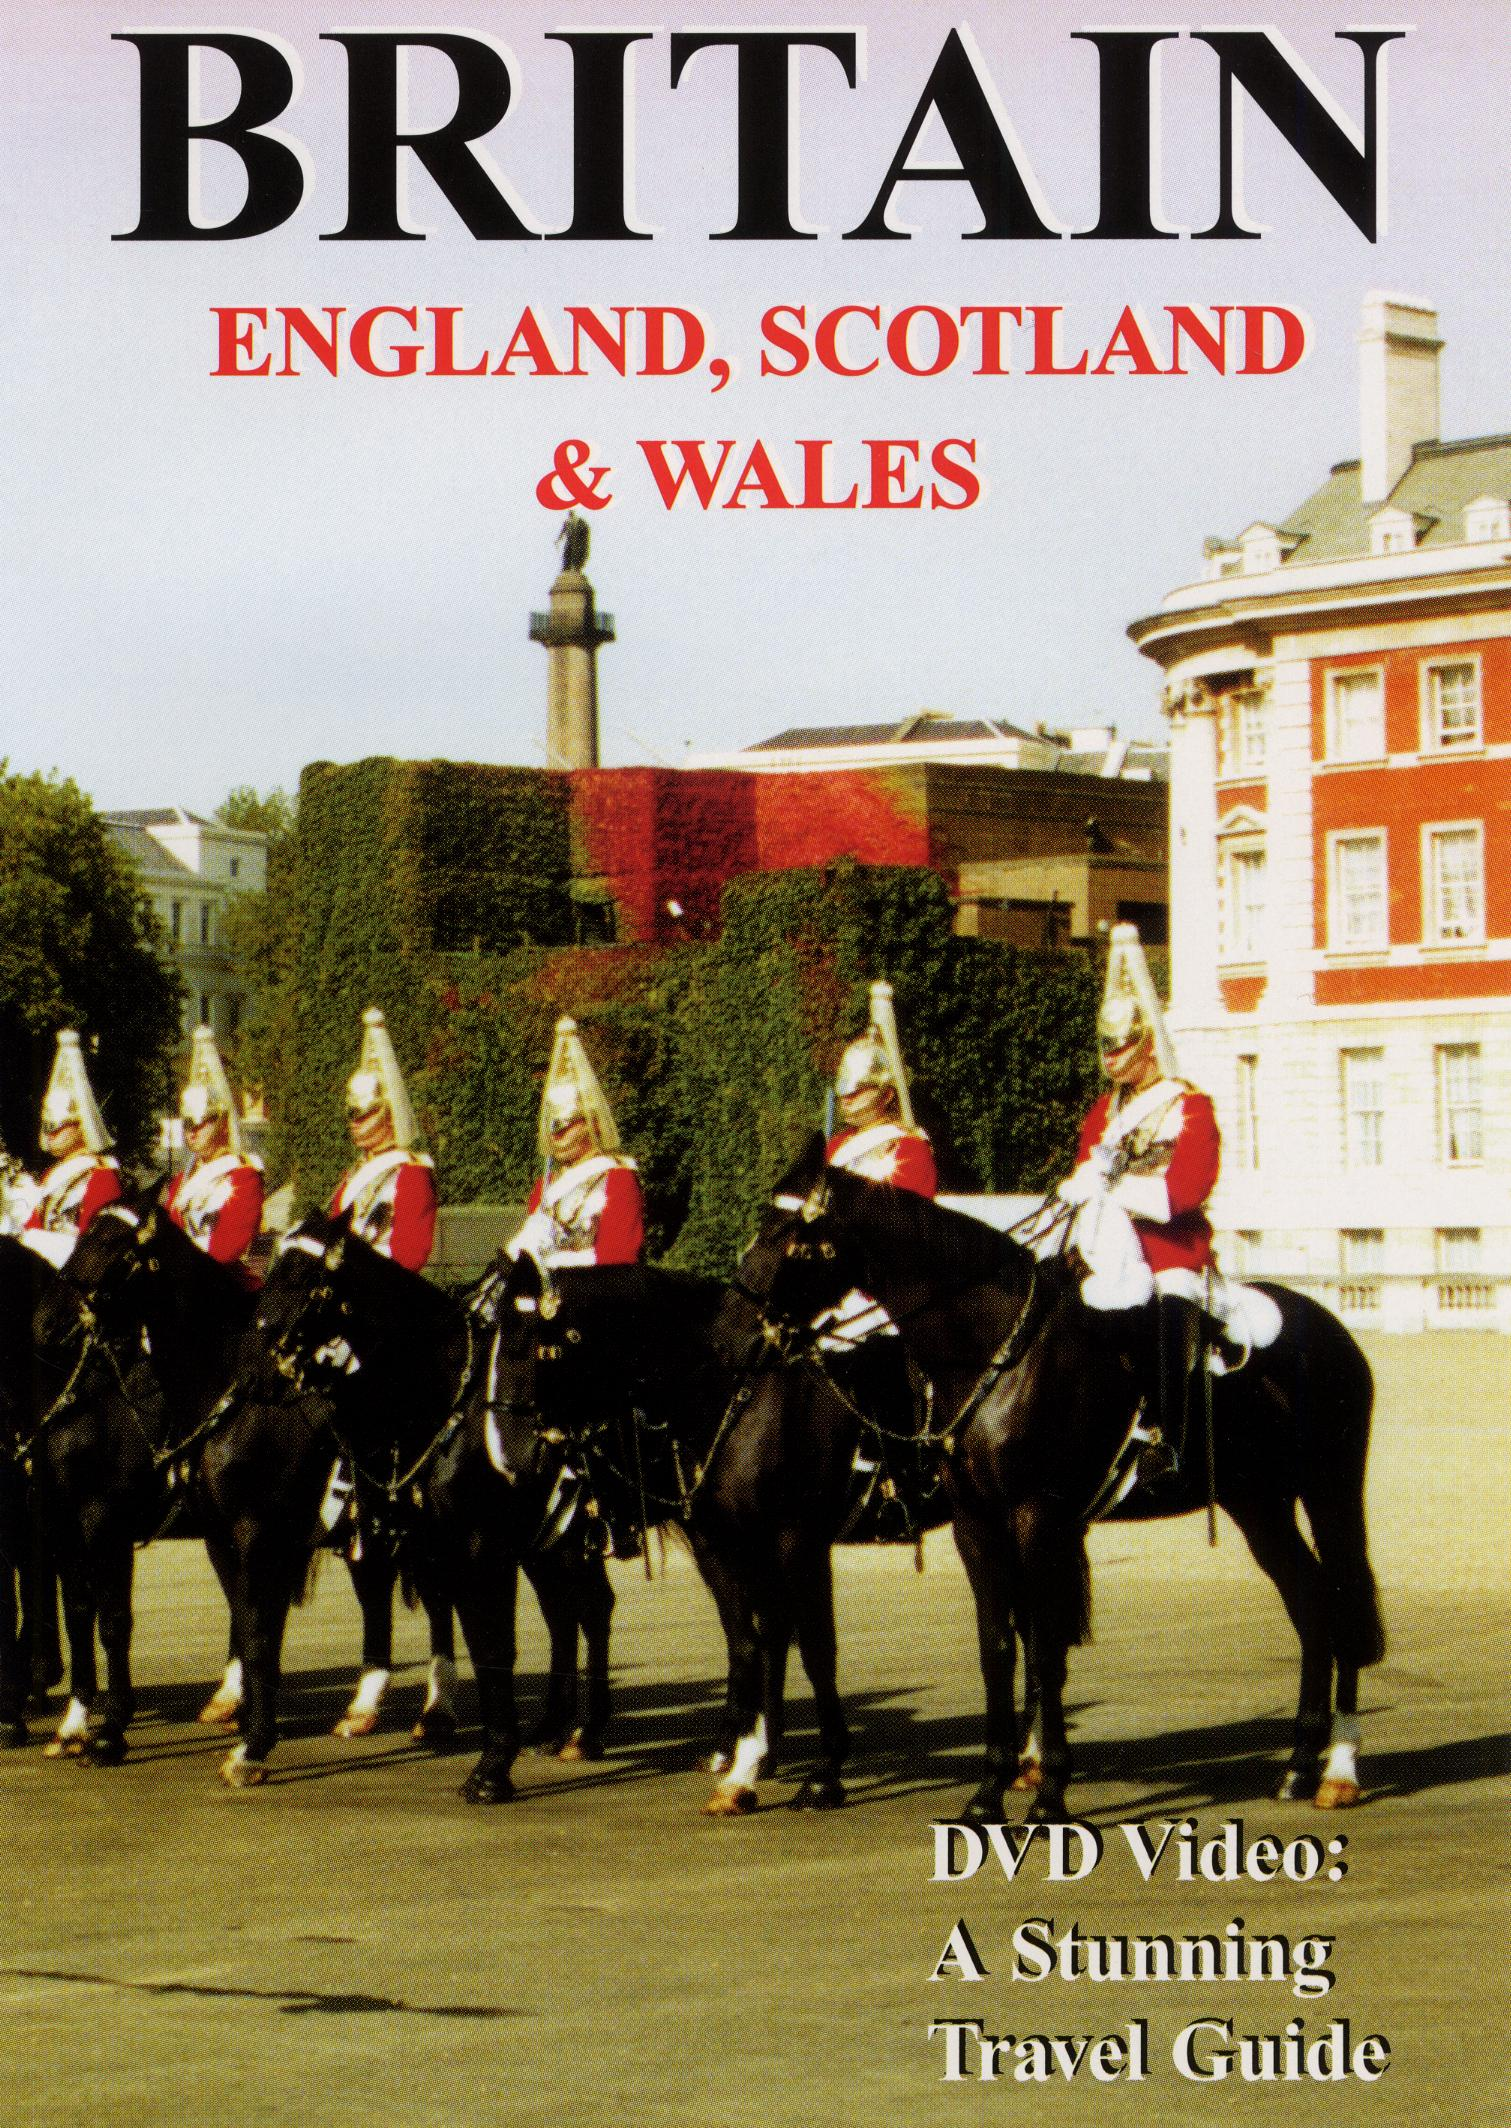 Britain: England, Scotland and Wales